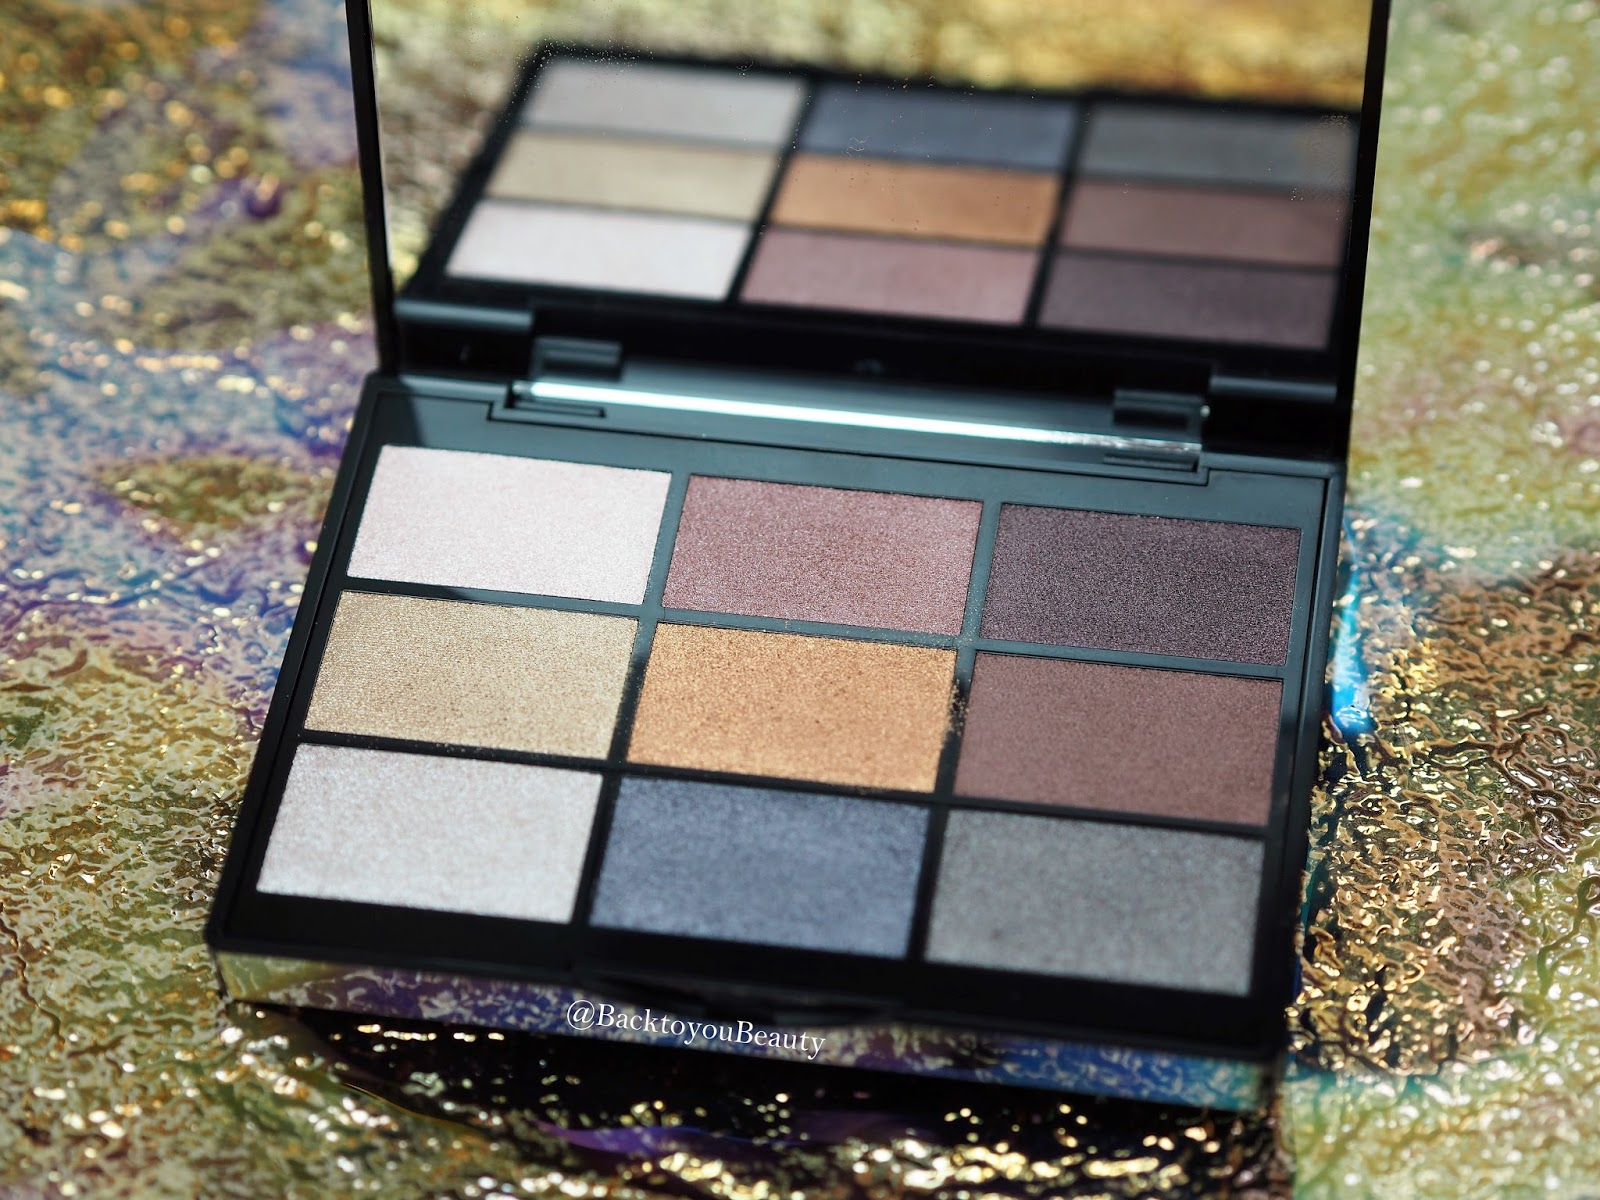 GOSH 9 Shades Eyeshadow Palette To Party In London